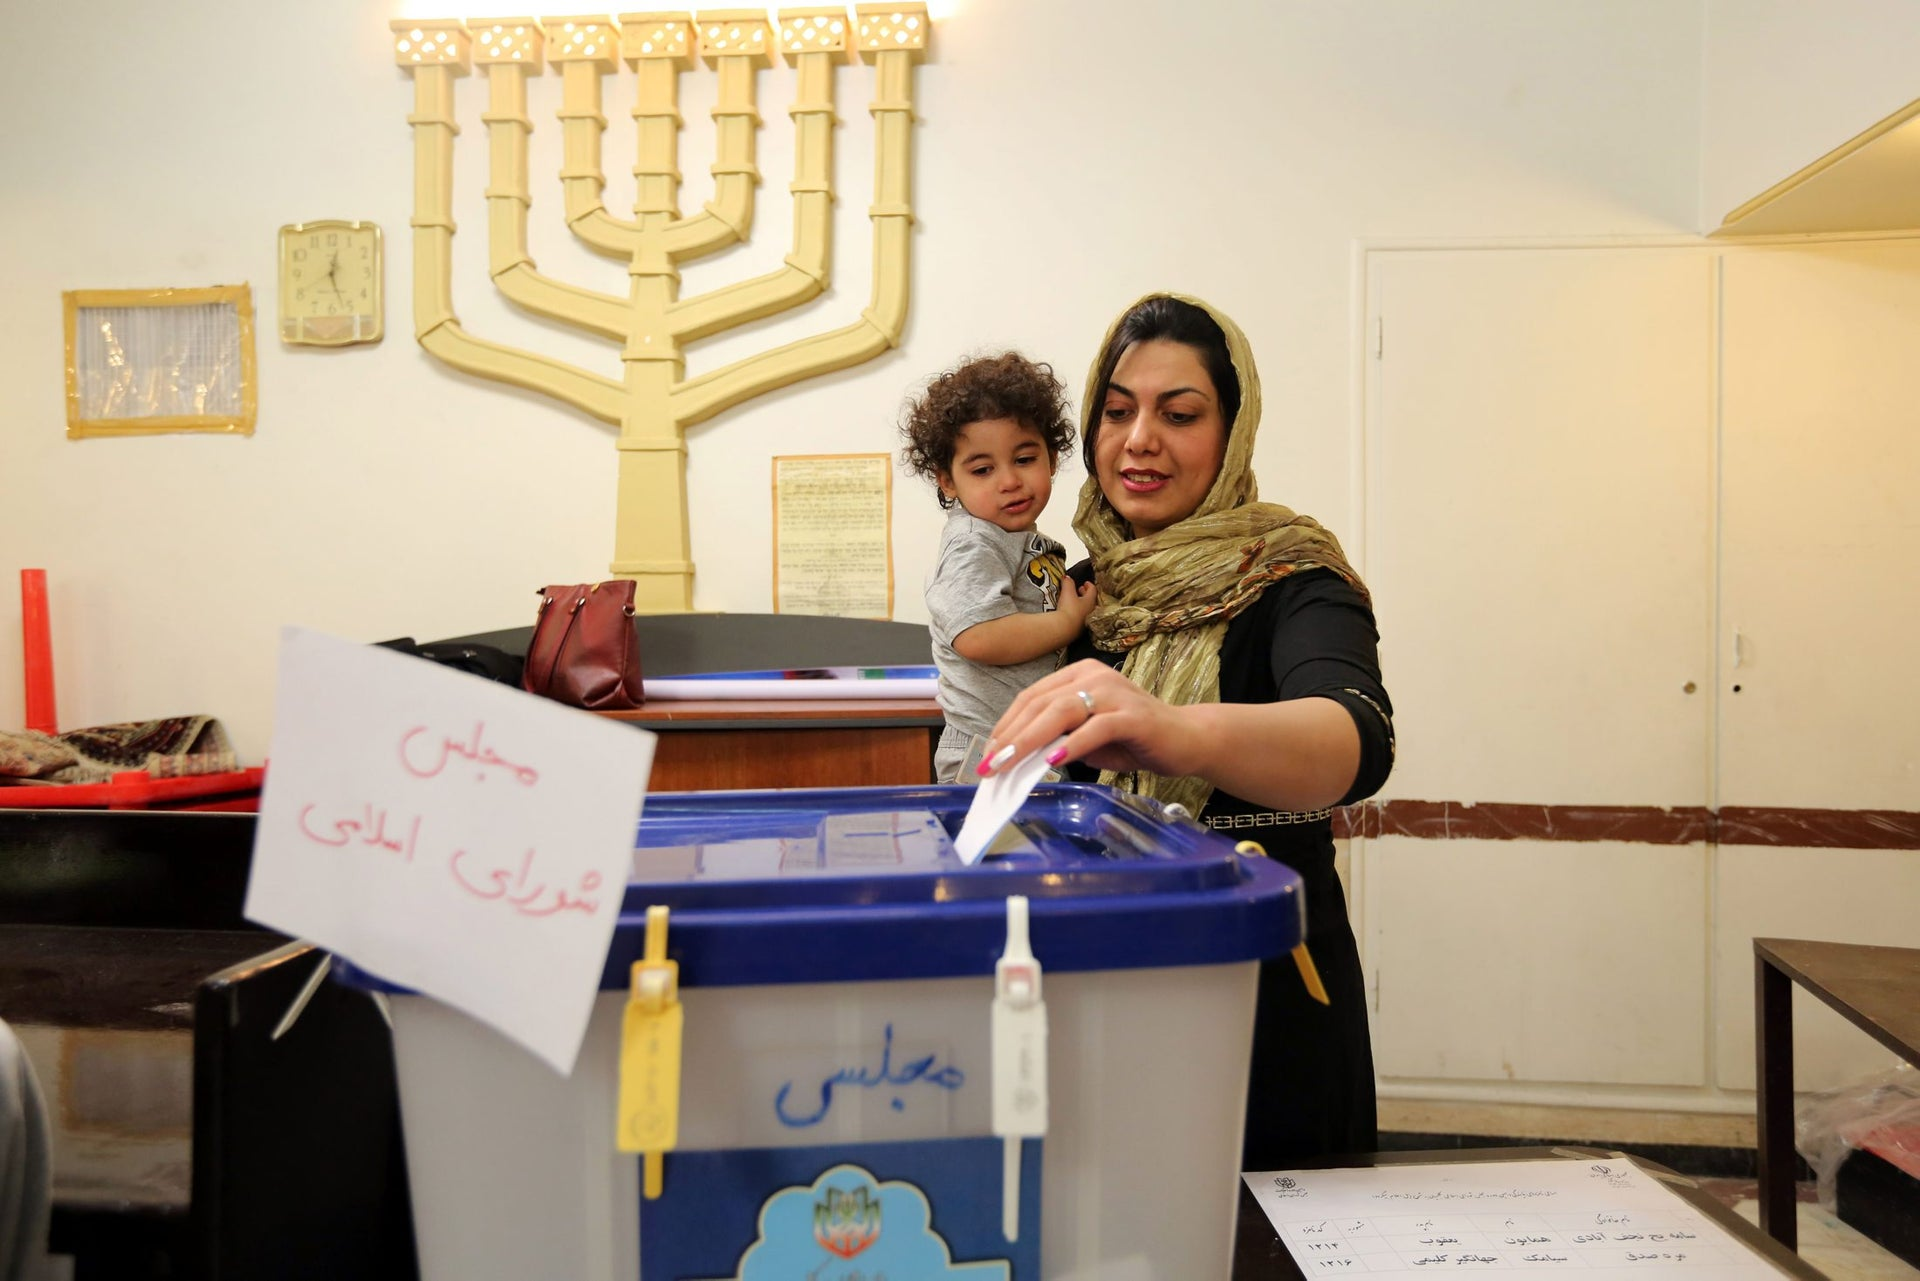 A Jewish Iranian woman casts her vote at a synagogue used as a polling station for the Jewish community in Tehran on February 26, 2016.